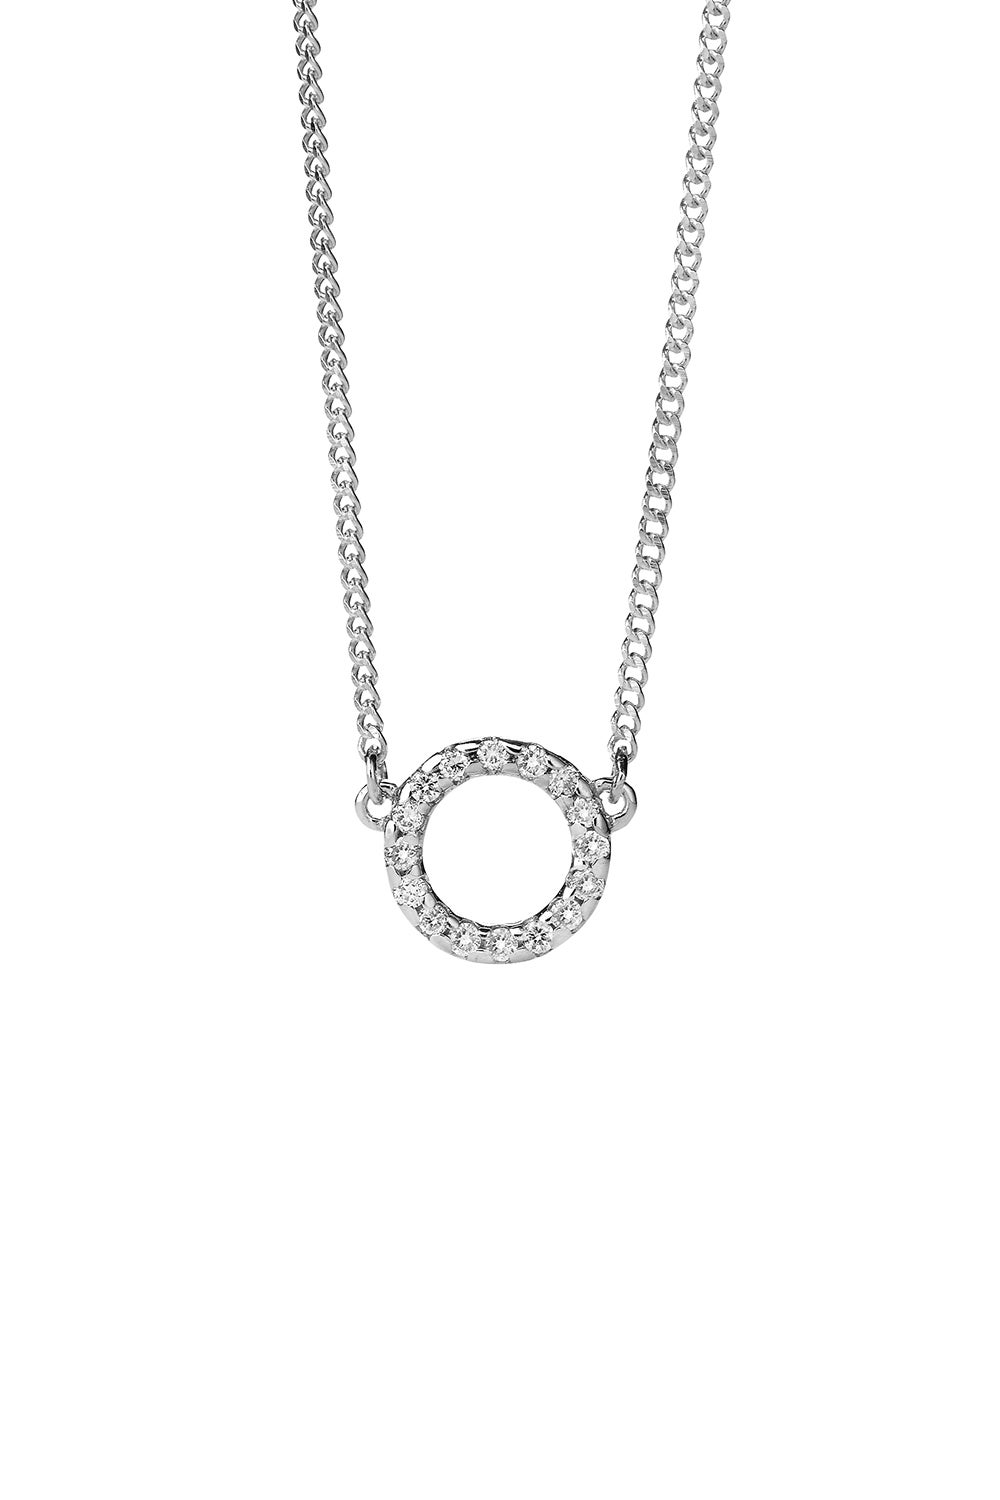 Orbit Diamond Necklace, 9ct White Gold, .11ct Diamond